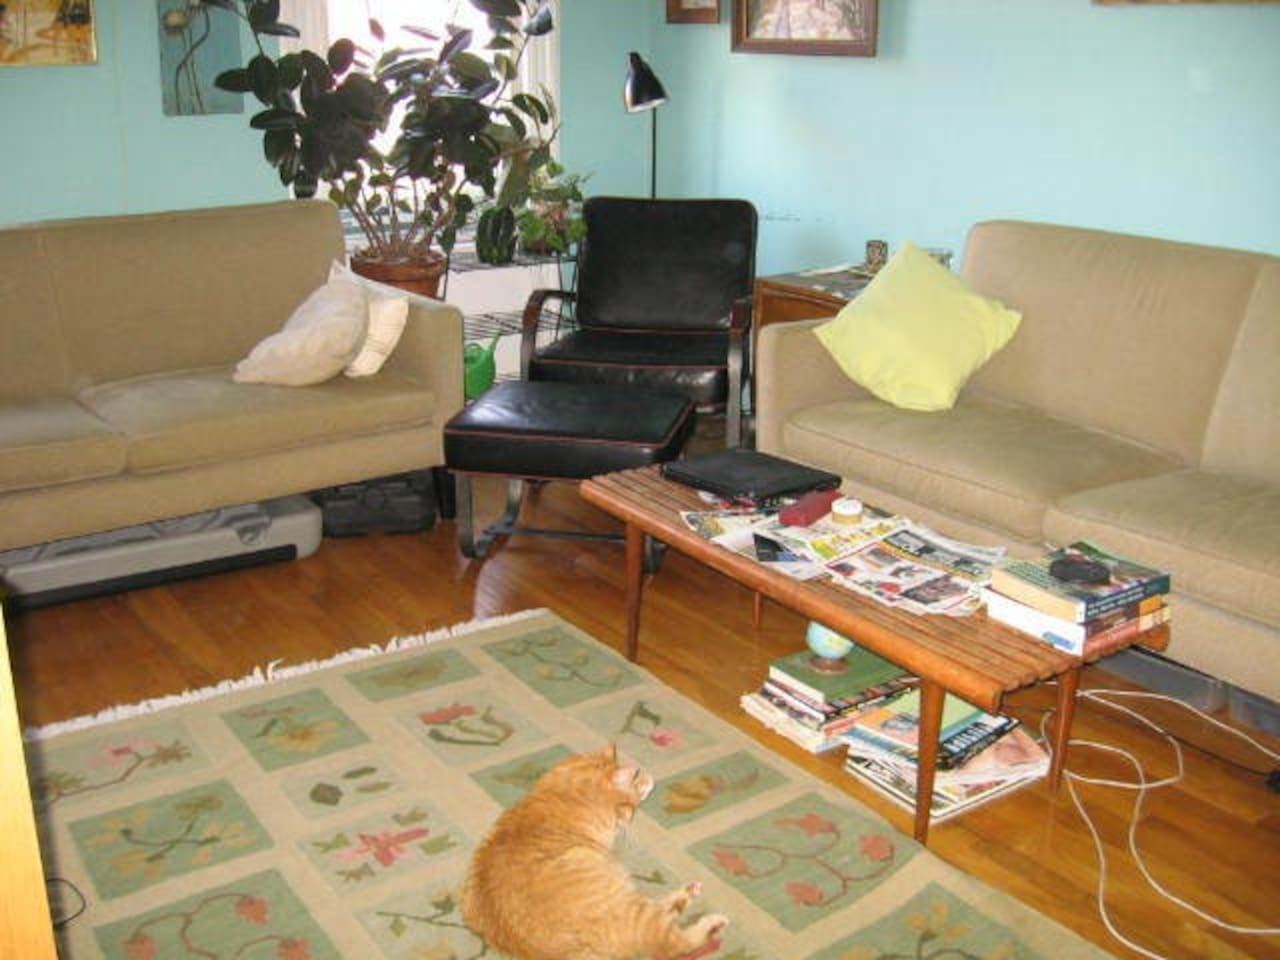 The living room. The sofa on the right has been swapped for a sofabed.